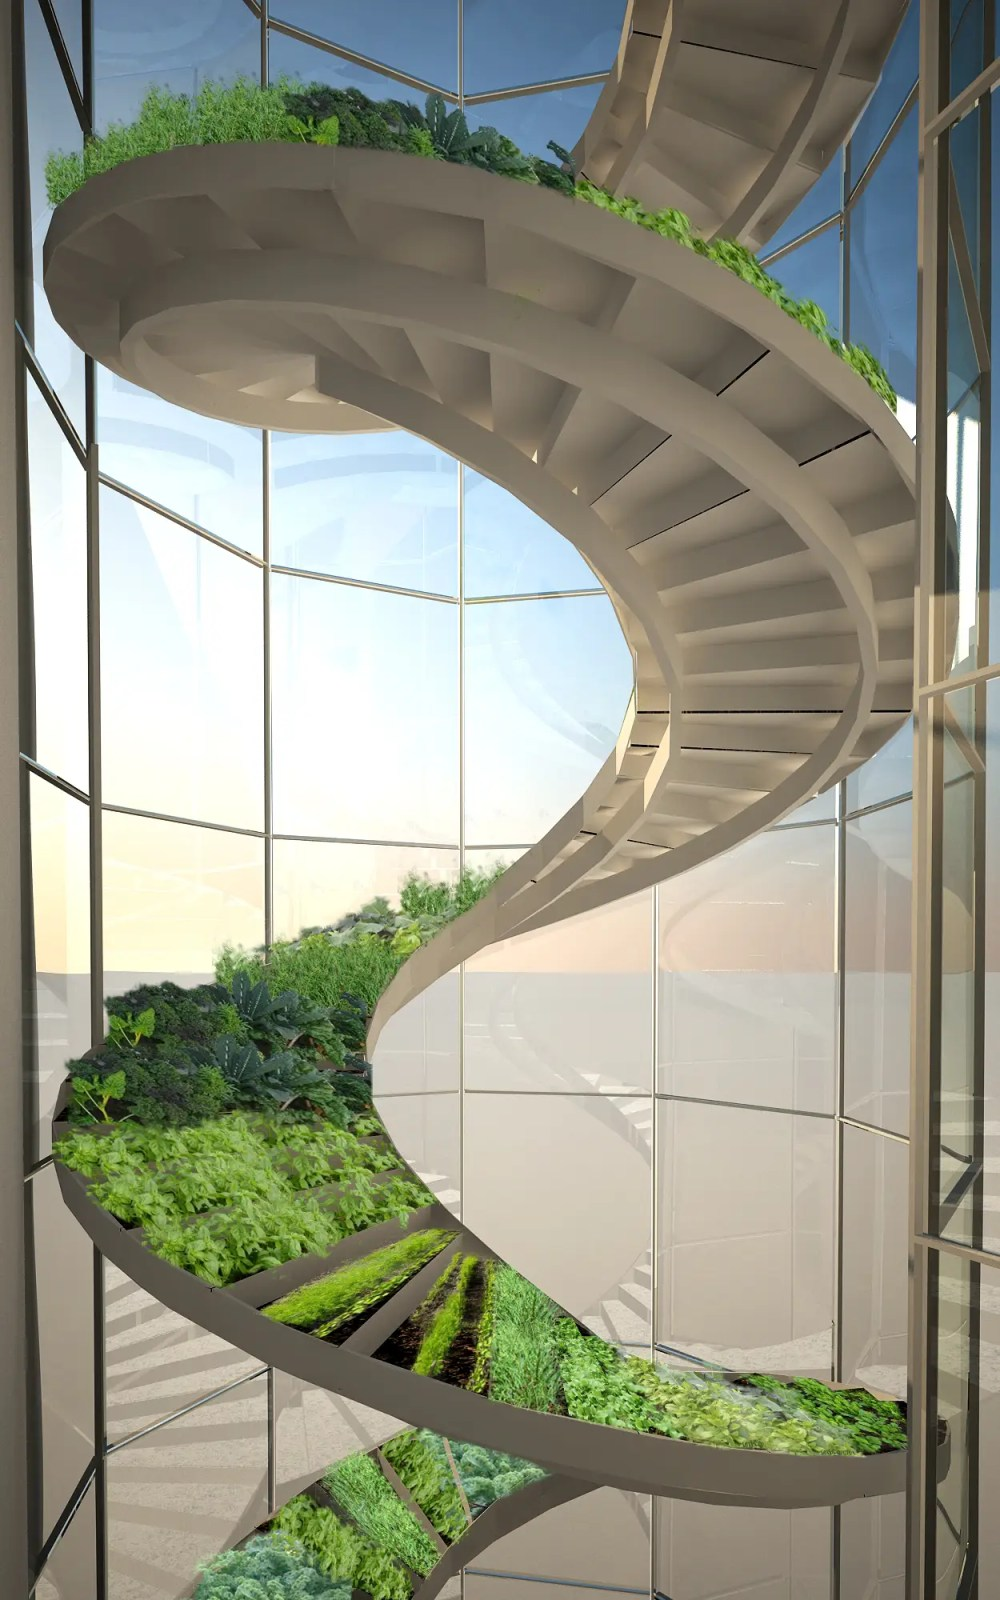 This plantscraper will include a spiraled food production line, which automatically moves the plants from the bottom to the top and back again while they grow. The length of the cycle would depend on the crop, but would normally take around 30 days, Hassle said.